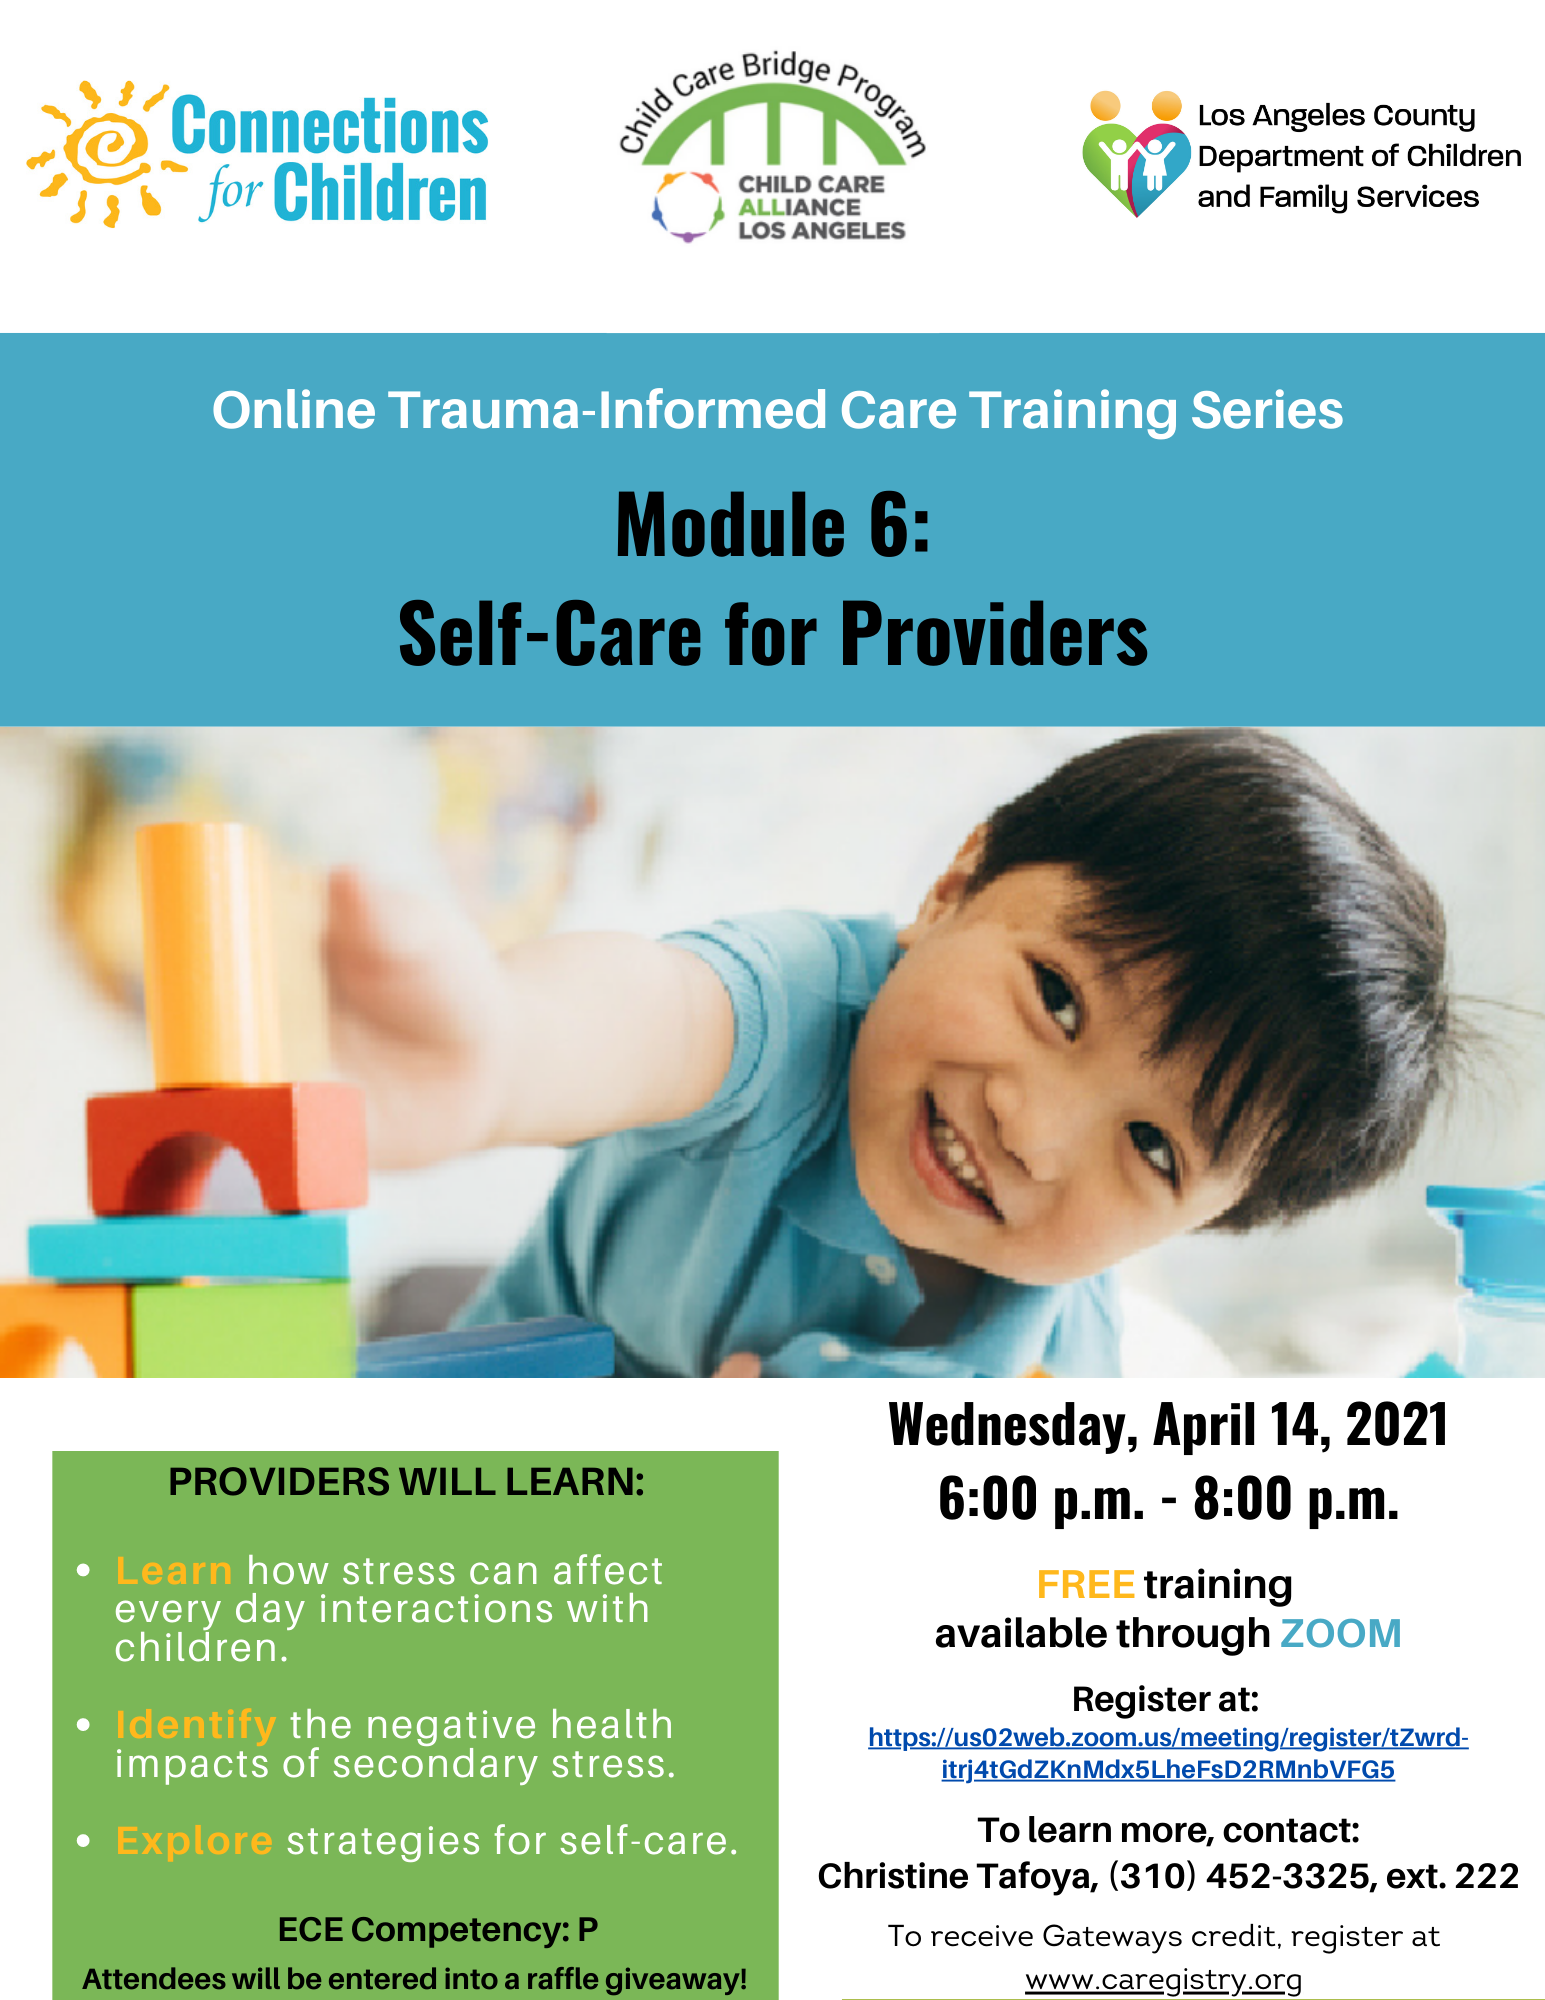 Self-Care for Providers